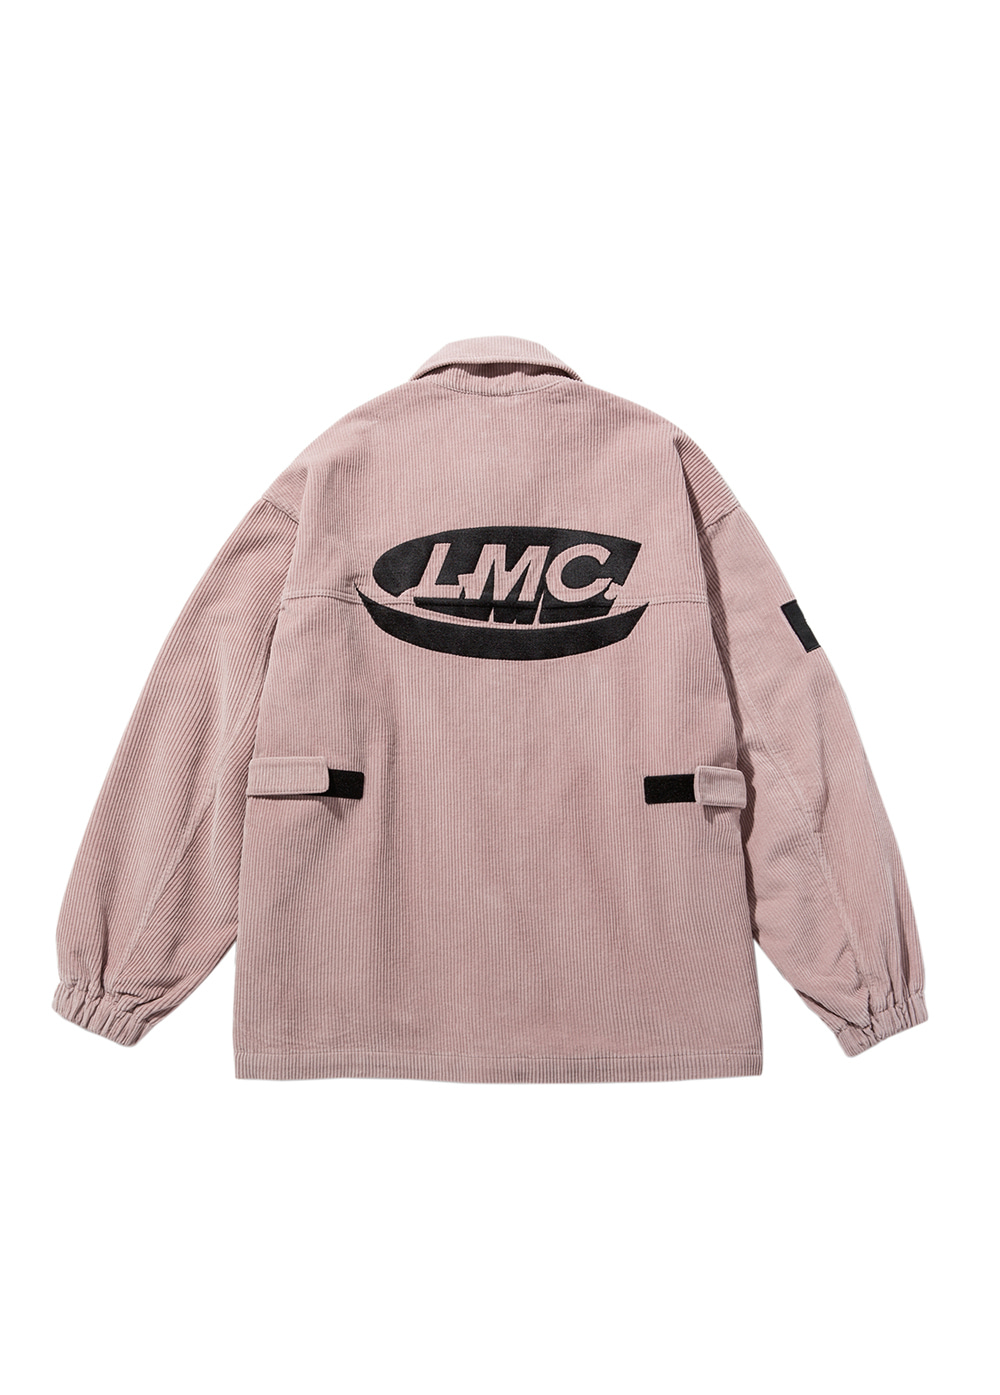 LMC SINGLE CORDUROY JACKET powder pink